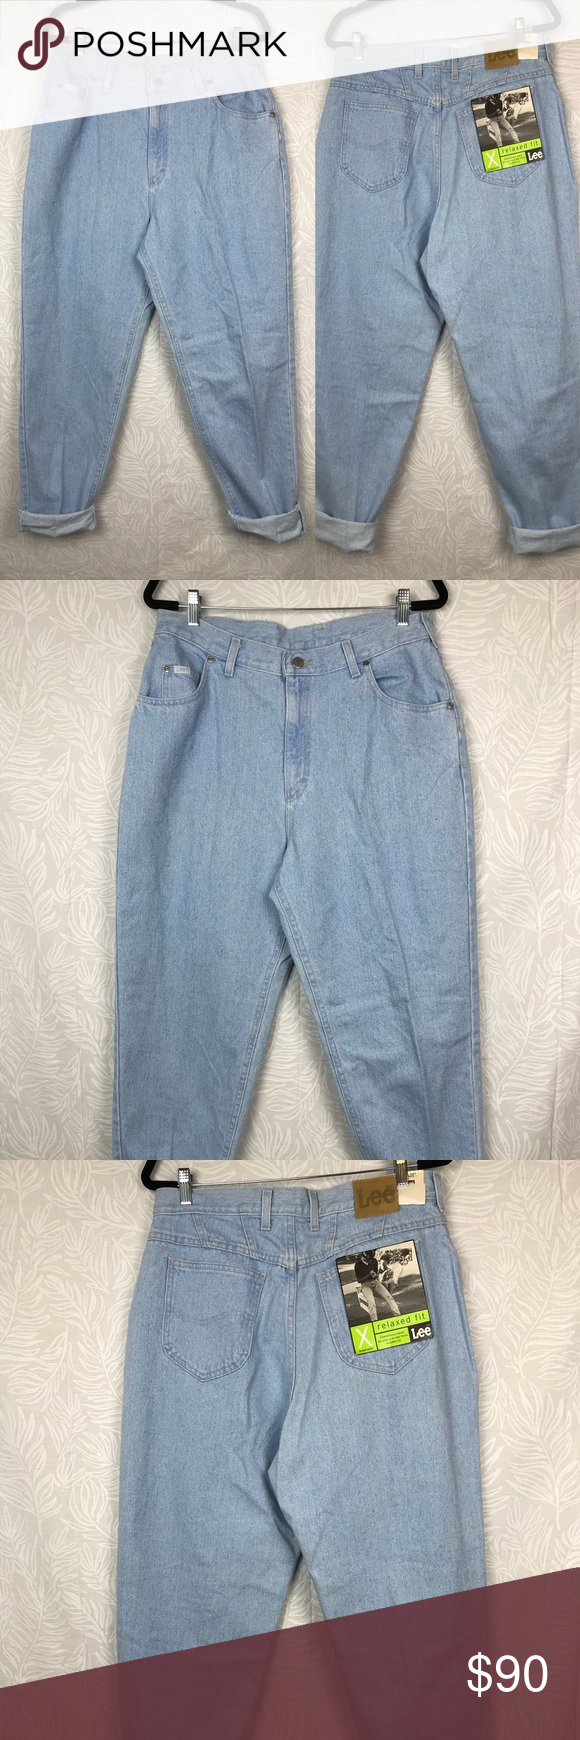 "a3f8c1c4 LEE NWT vintage 90s mom jeans light wash high rise Waist: 17"" Inseam ..."